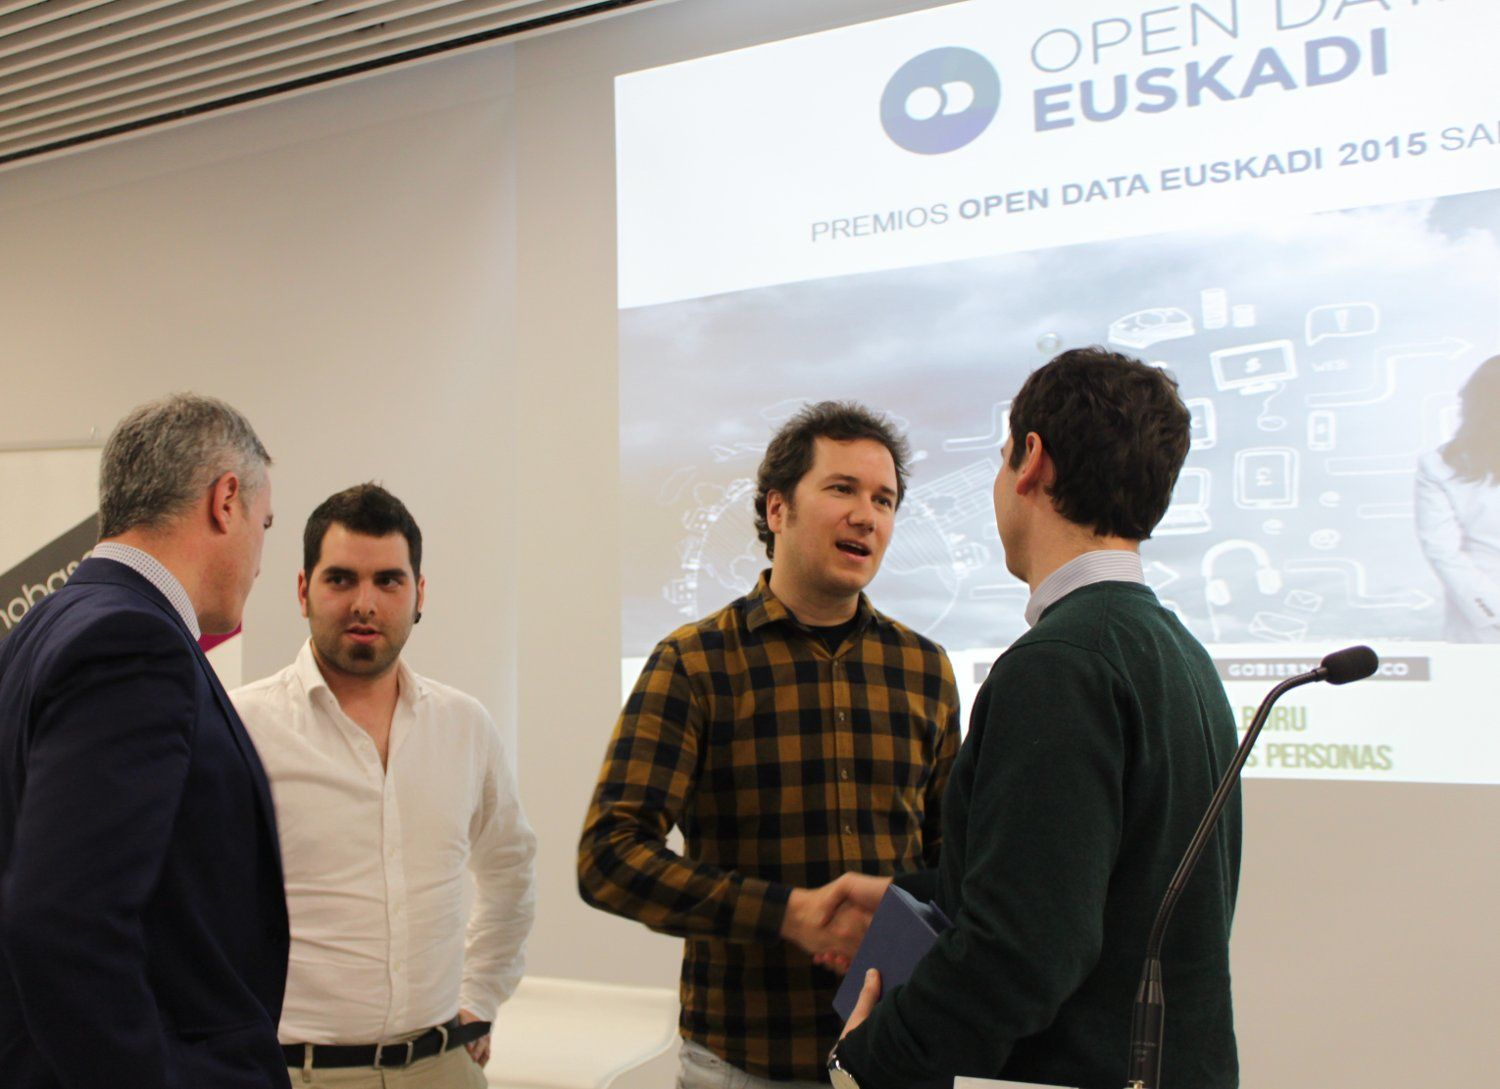 Entrega del Premio Open Data Euskadi 2015 a Irontec y The Makery